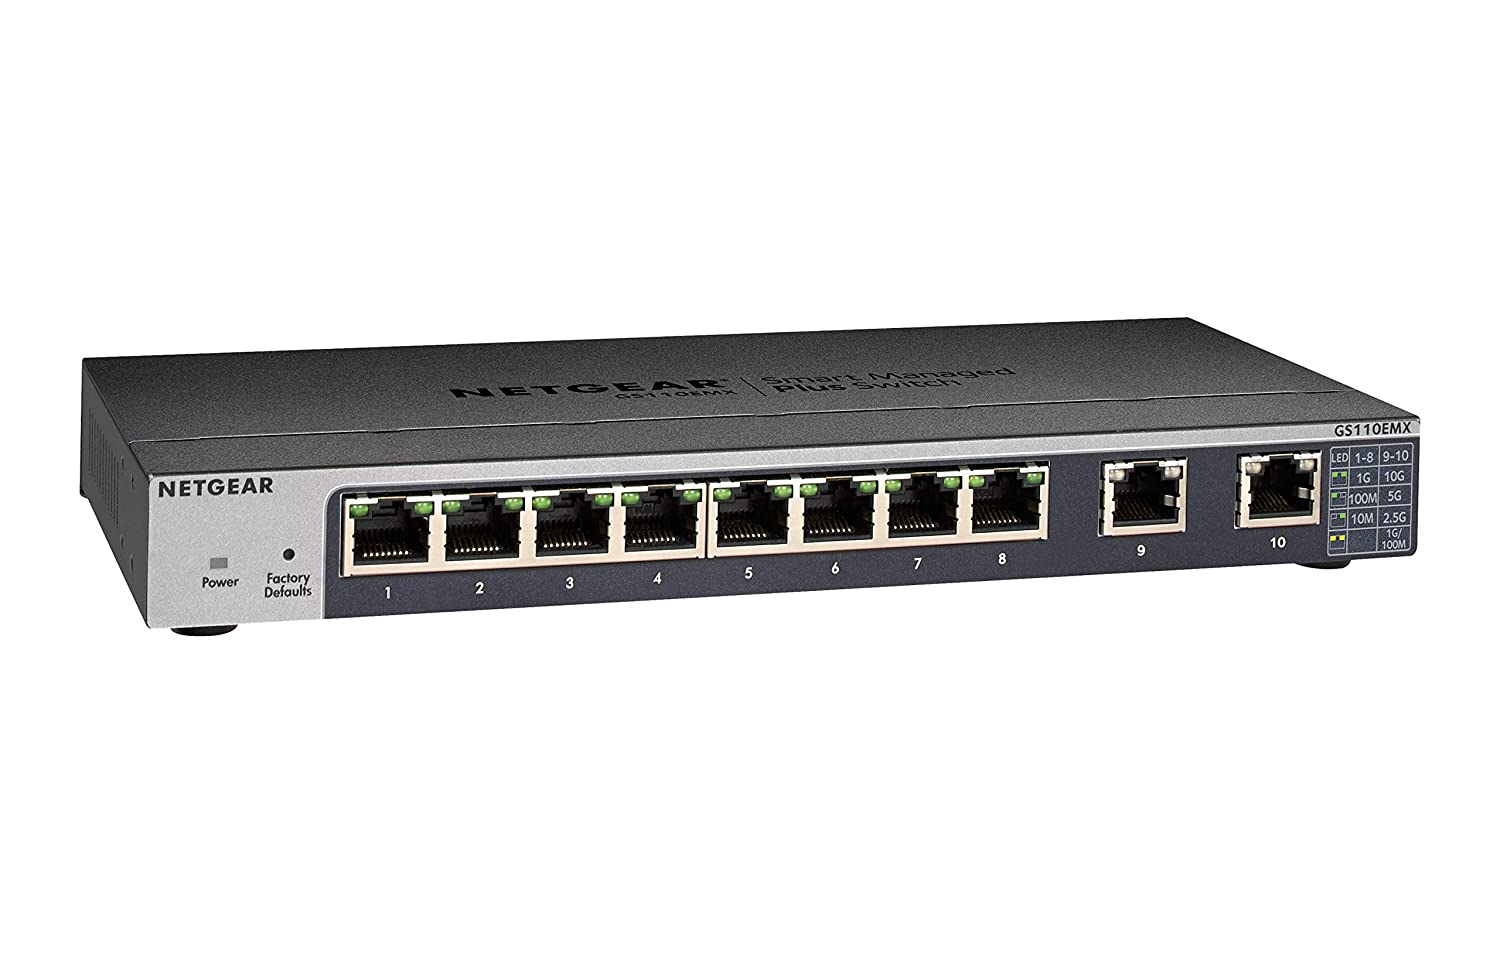 NETGEAR 10-Port Gigabit/10G Ethernet Smart Managed Plus Switch (GS110EMX) - with 2 x 10G/Multi-gig, Desktop/Rackmount, and ProSAFE Limited Lifetime Protection